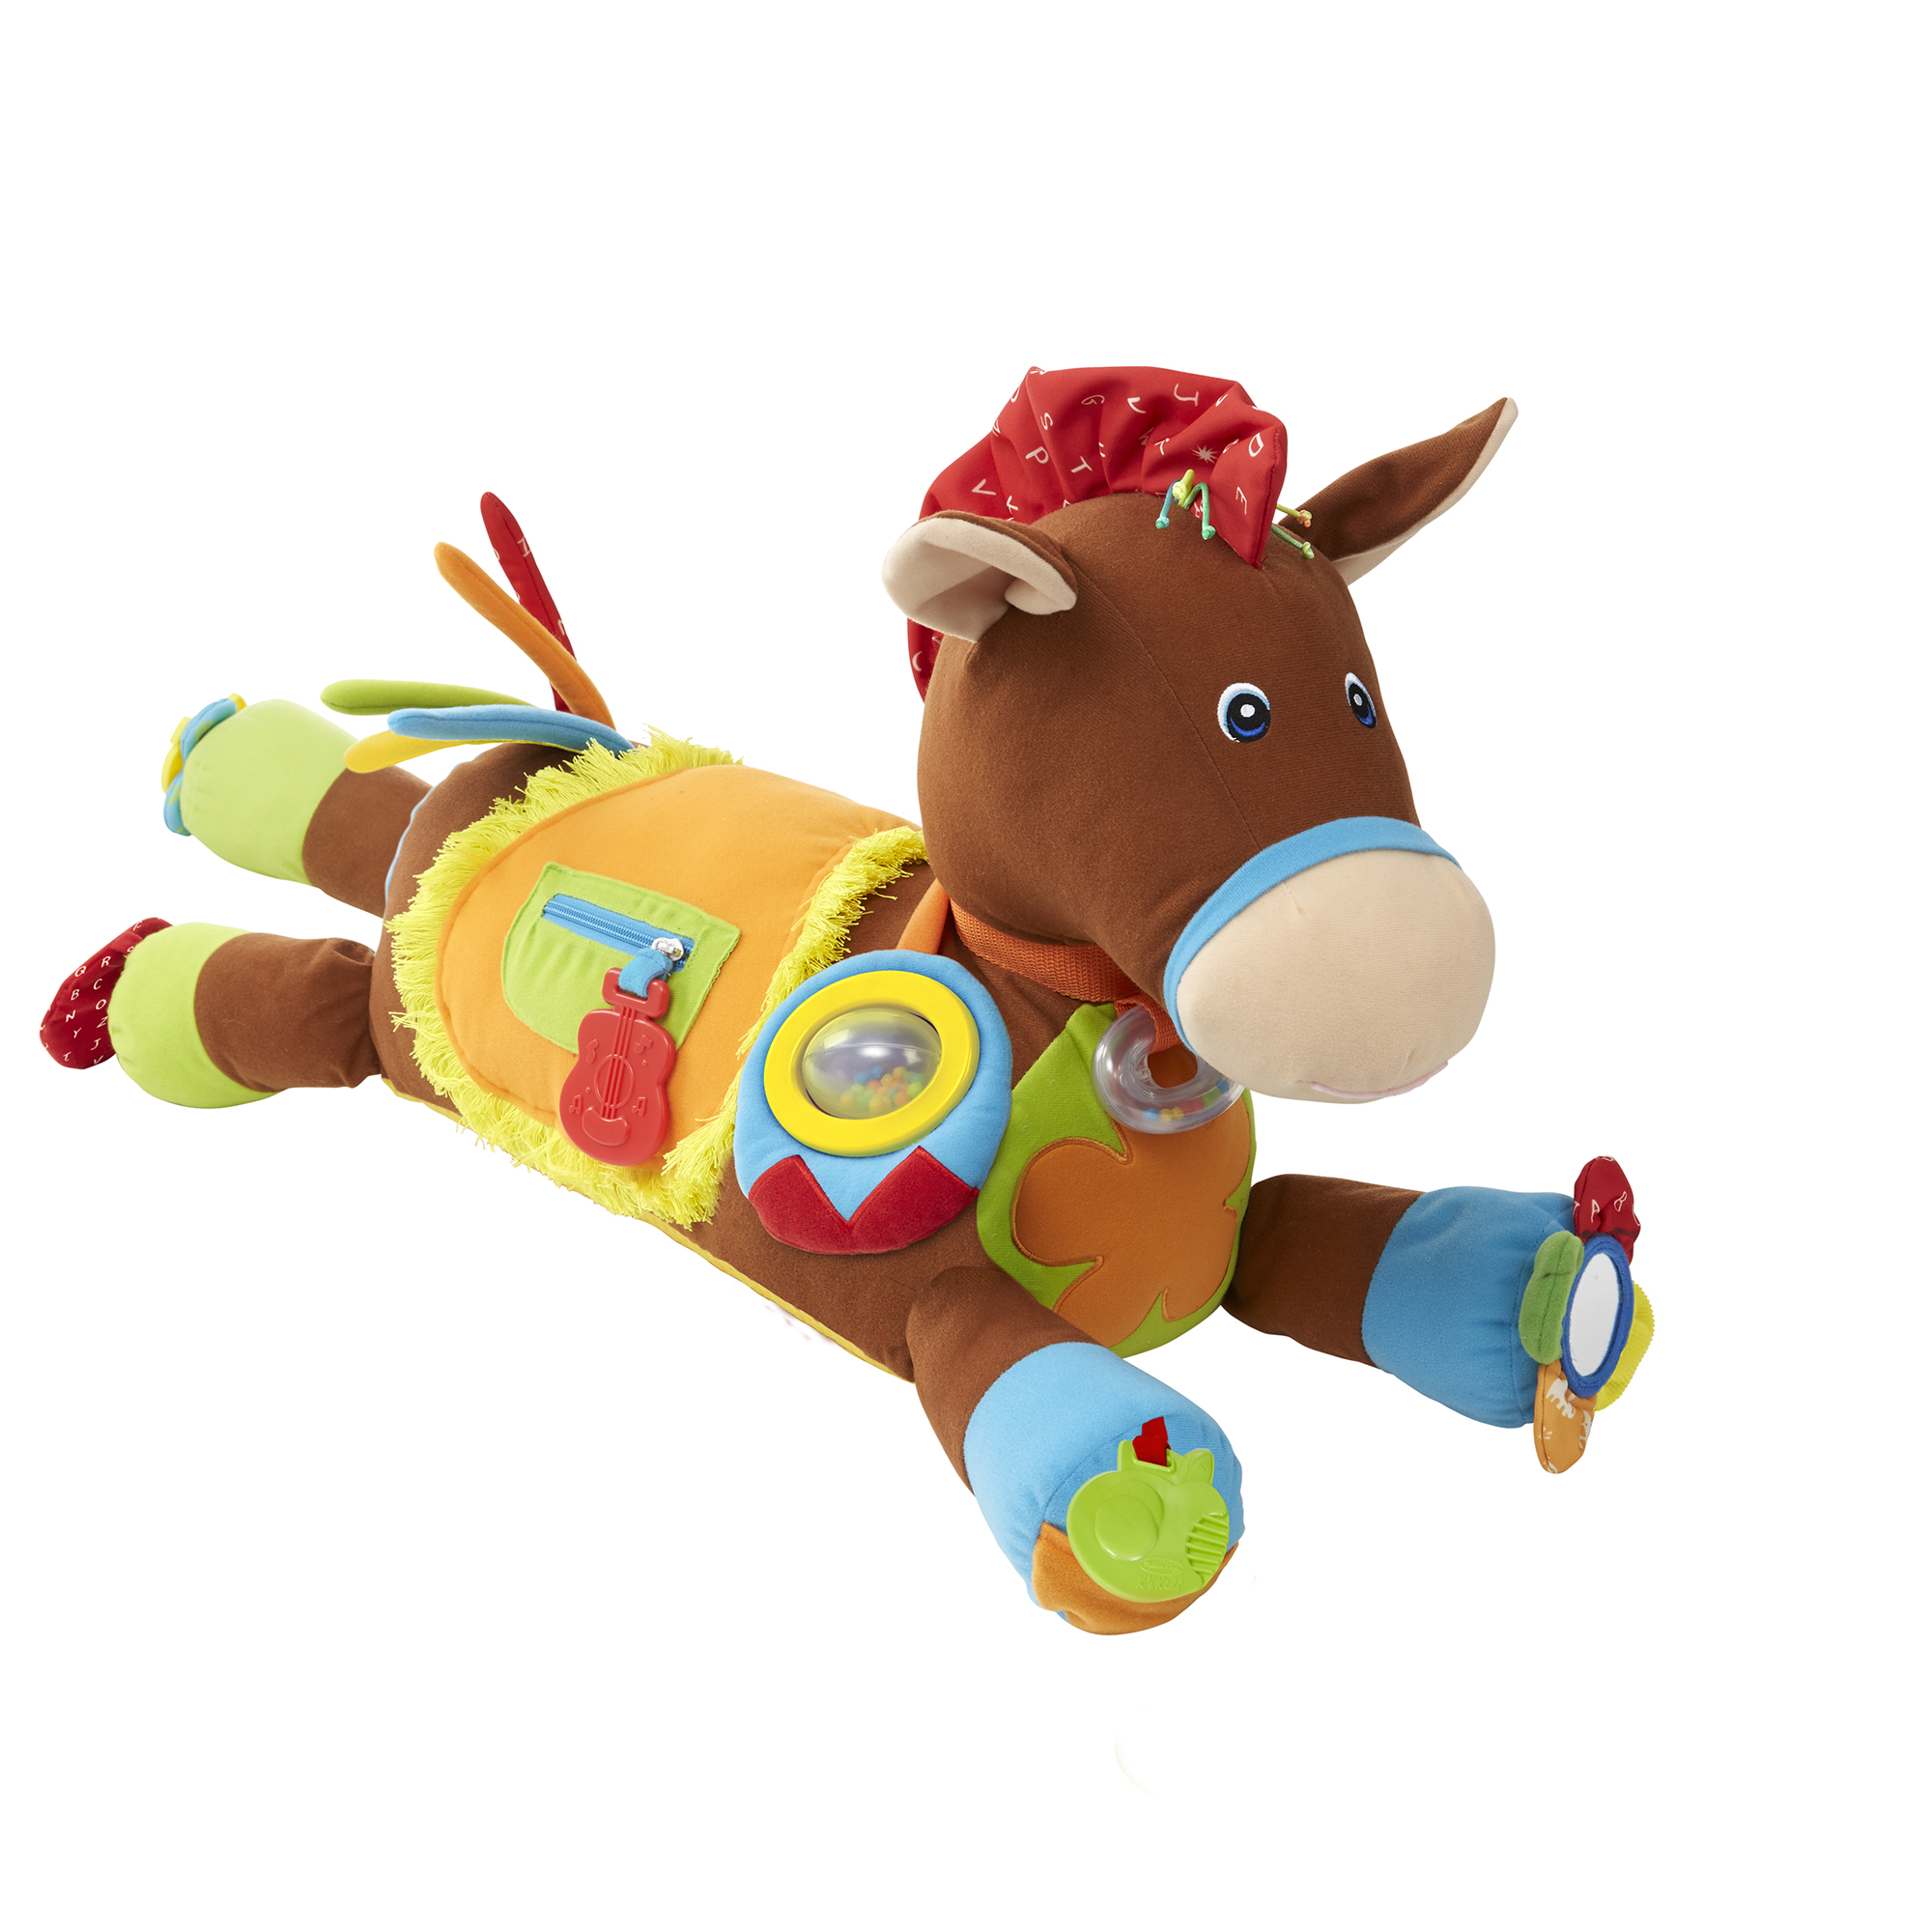 Giddy-Up & Play Activity Toy 9222